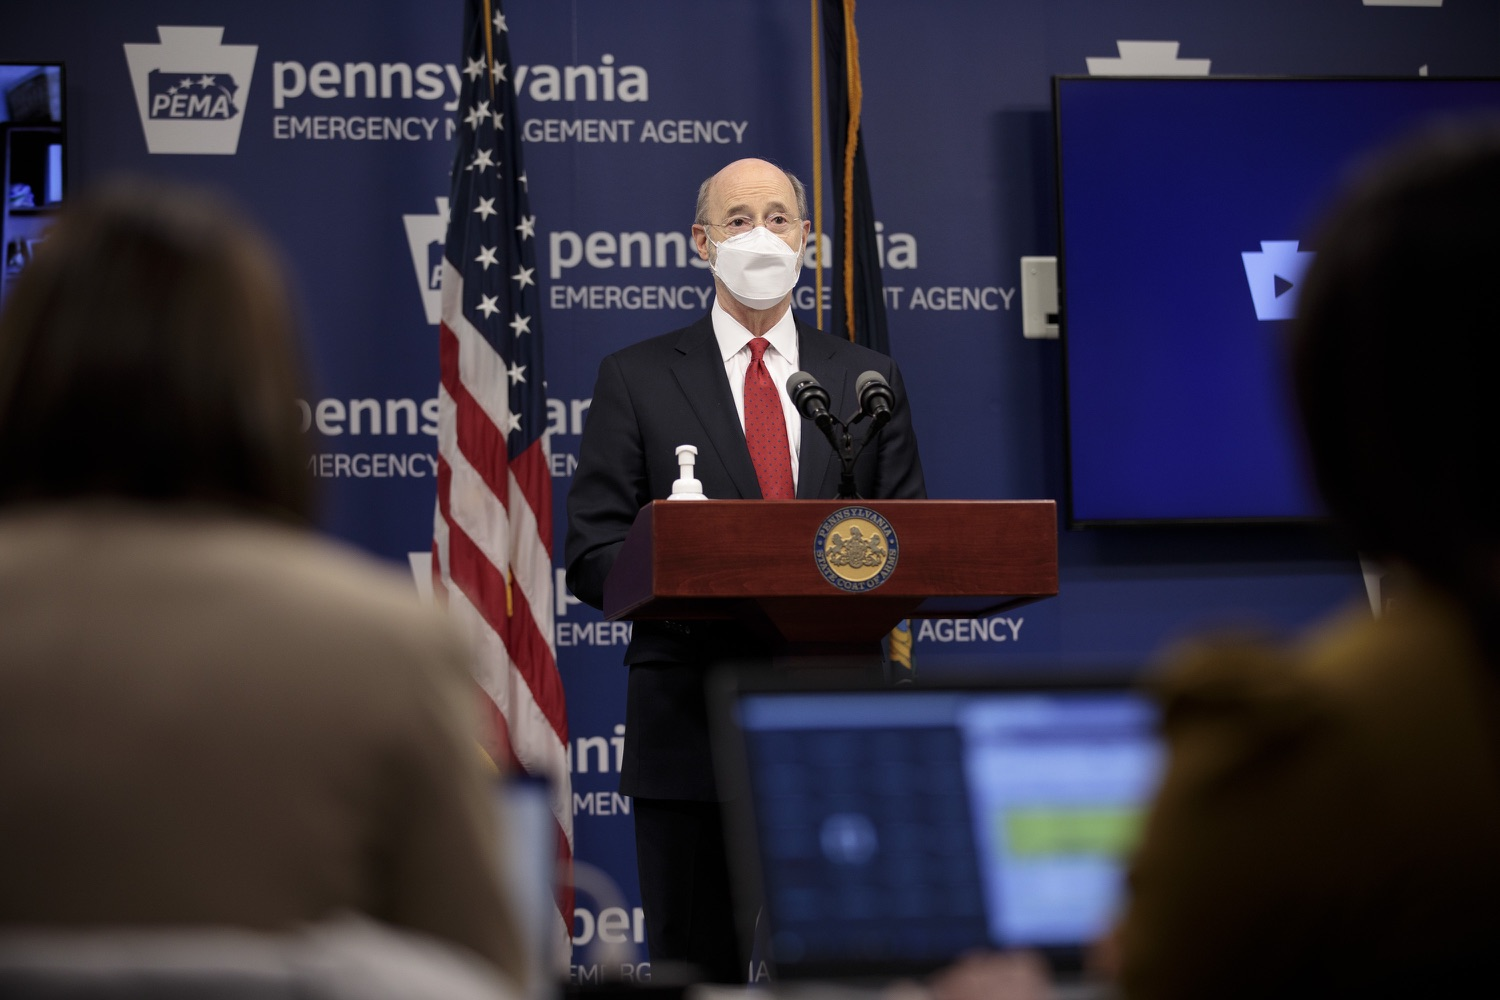 "<a href=""https://filesource.wostreaming.net/commonwealthofpa/photo/18540_gov_backtowork_dz_13.jpg"" target=""_blank"">⇣ Download Photo<br></a>Pennsylvania Governor Tom Wolf speaking at the press conference. The COVID-19 global pandemic has significantly affected Pennsylvania workers, businesses and communities. To bolster economic recovery efforts and position Pennsylvania for economic growth, Governor Tom Wolf today unveiled his Back to Work PA plan.   Harrisburg, PA  February 22, 2021"